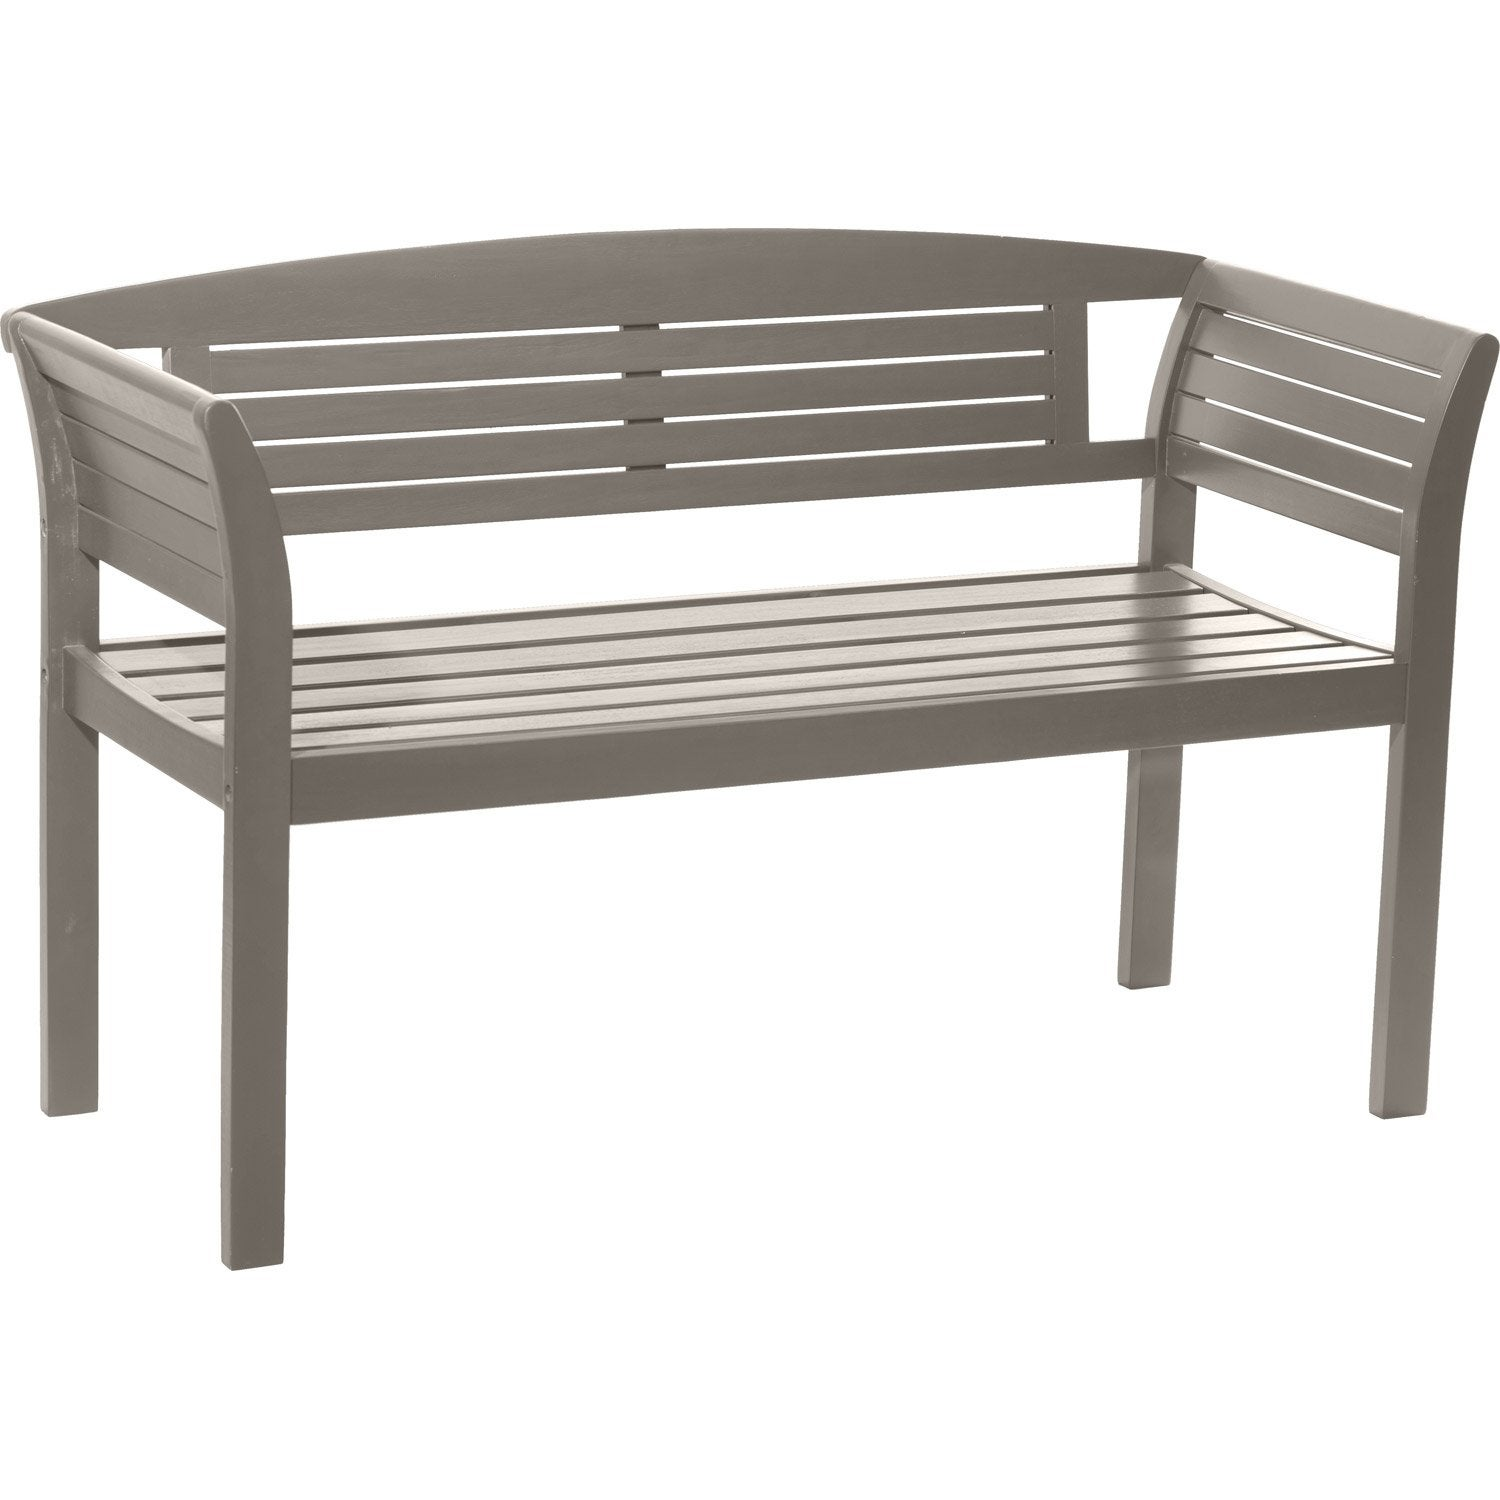 Banc 2 places de jardin en bois new york r glisse leroy merlin - Banc de jardin 2 places ...